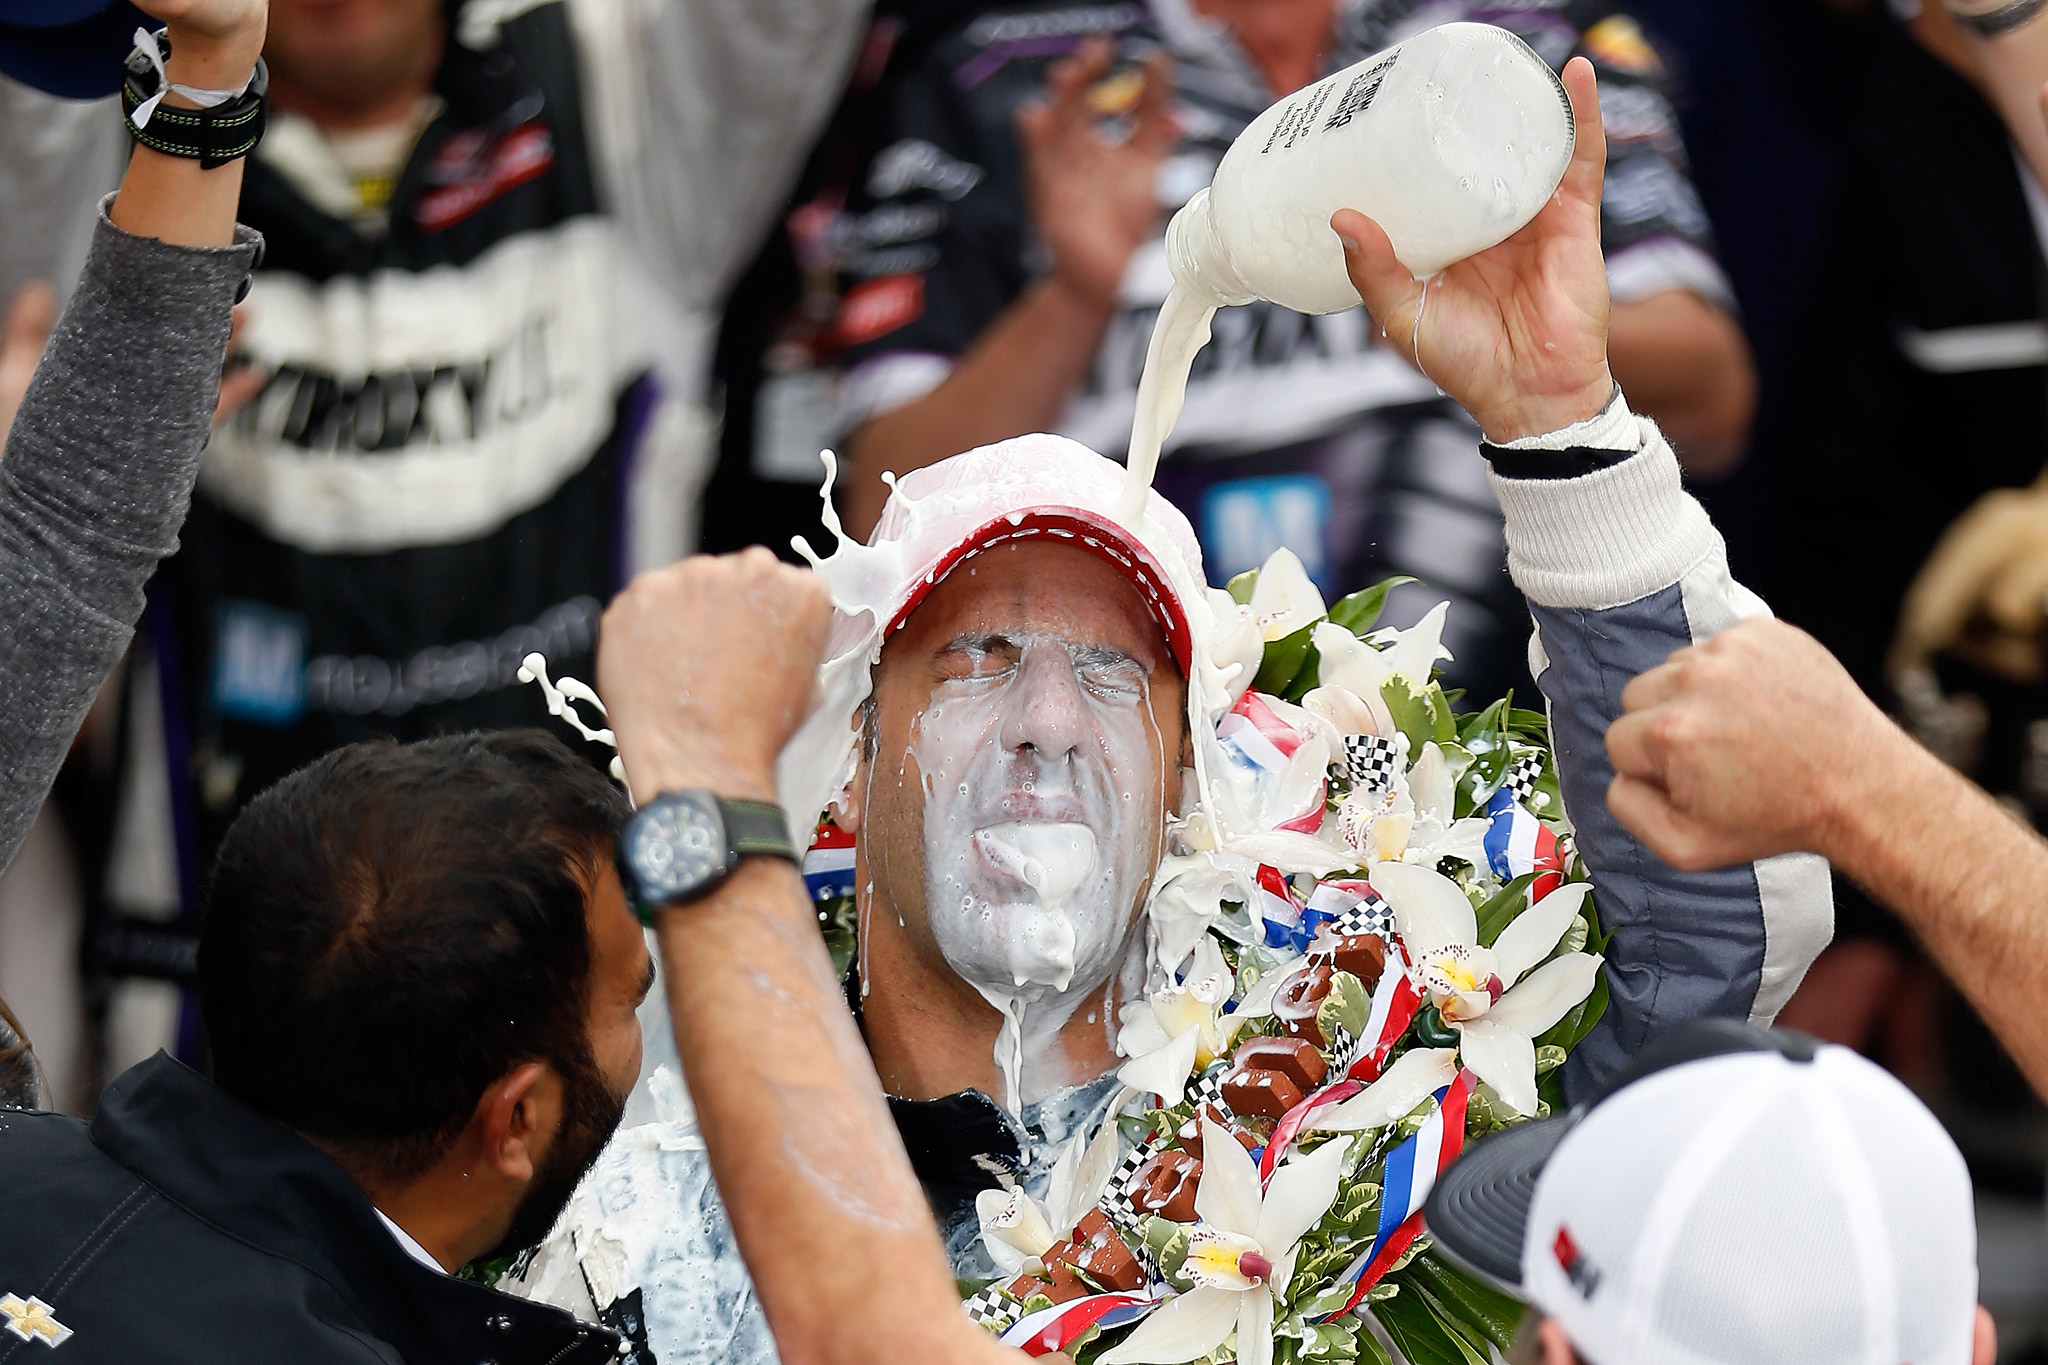 Tony Kanaan, drinking milk